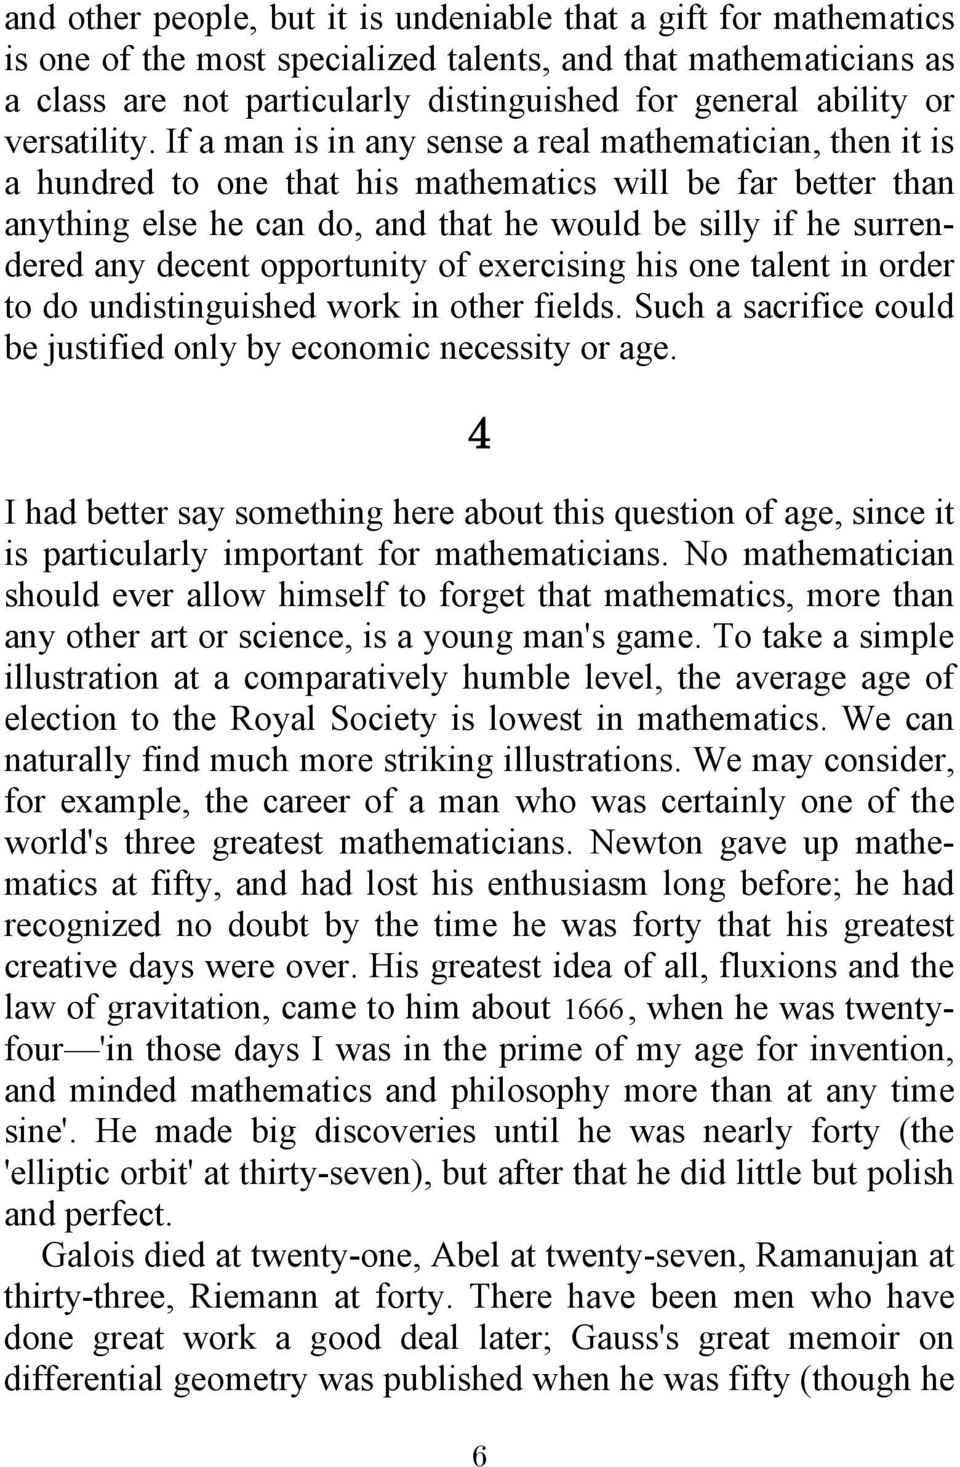 If a man is in any sense a real mathematician, then it is a hundred to one that his mathematics will be far better than anything else he can do, and that he would be silly if he surrendered any